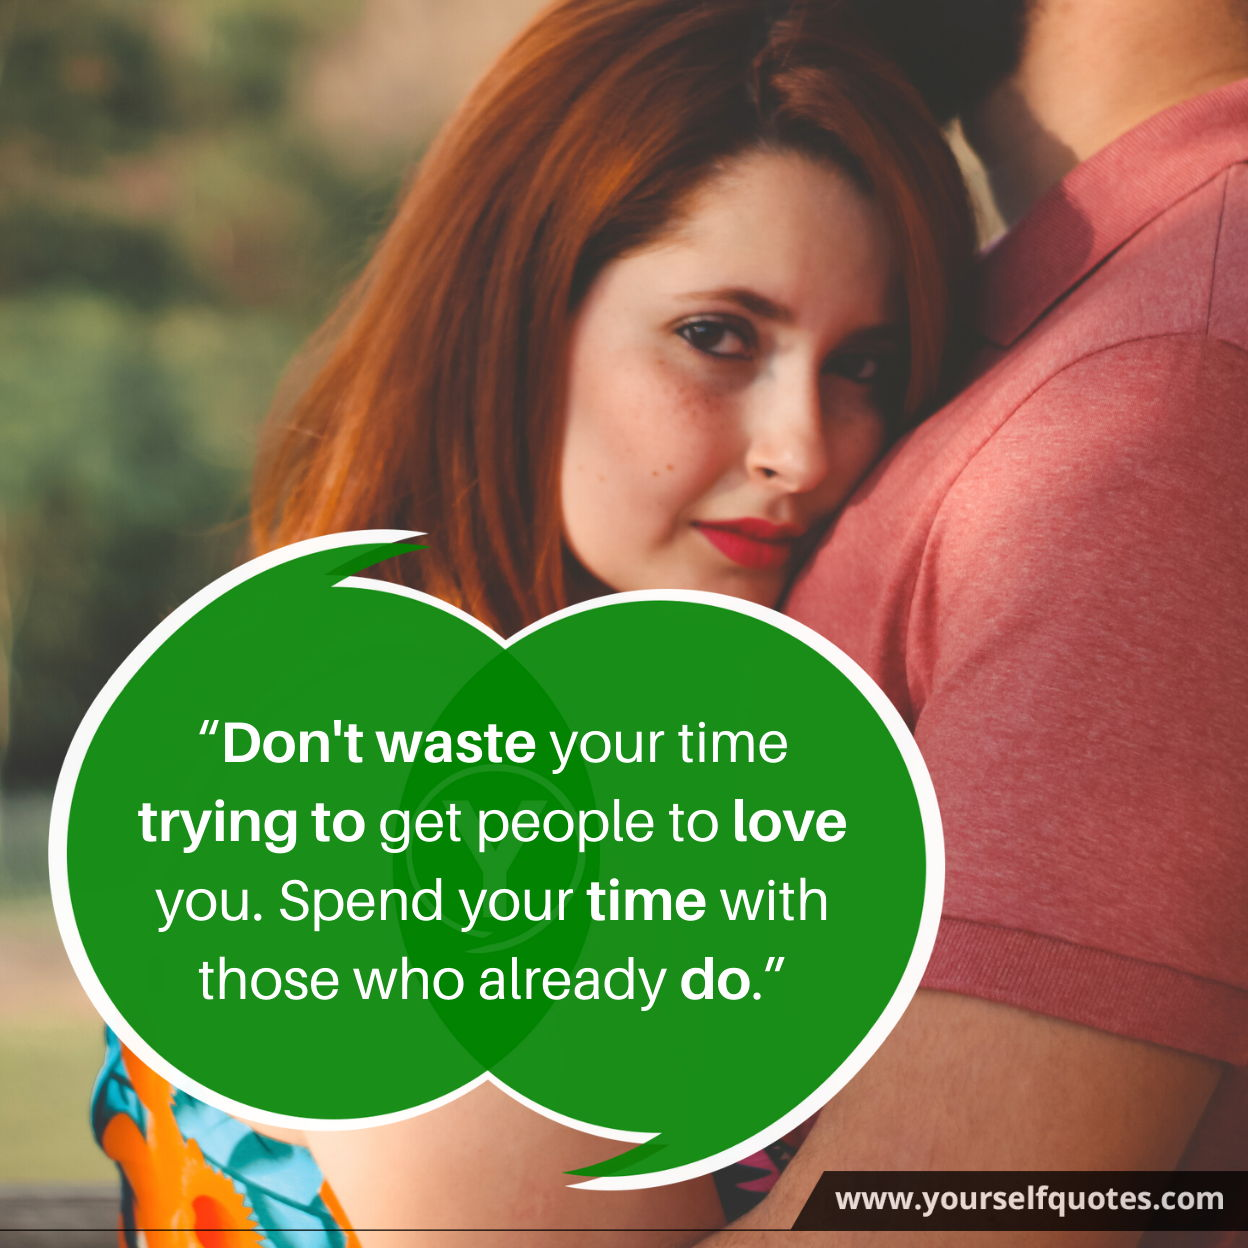 Best Quotes on Love Wallpaper